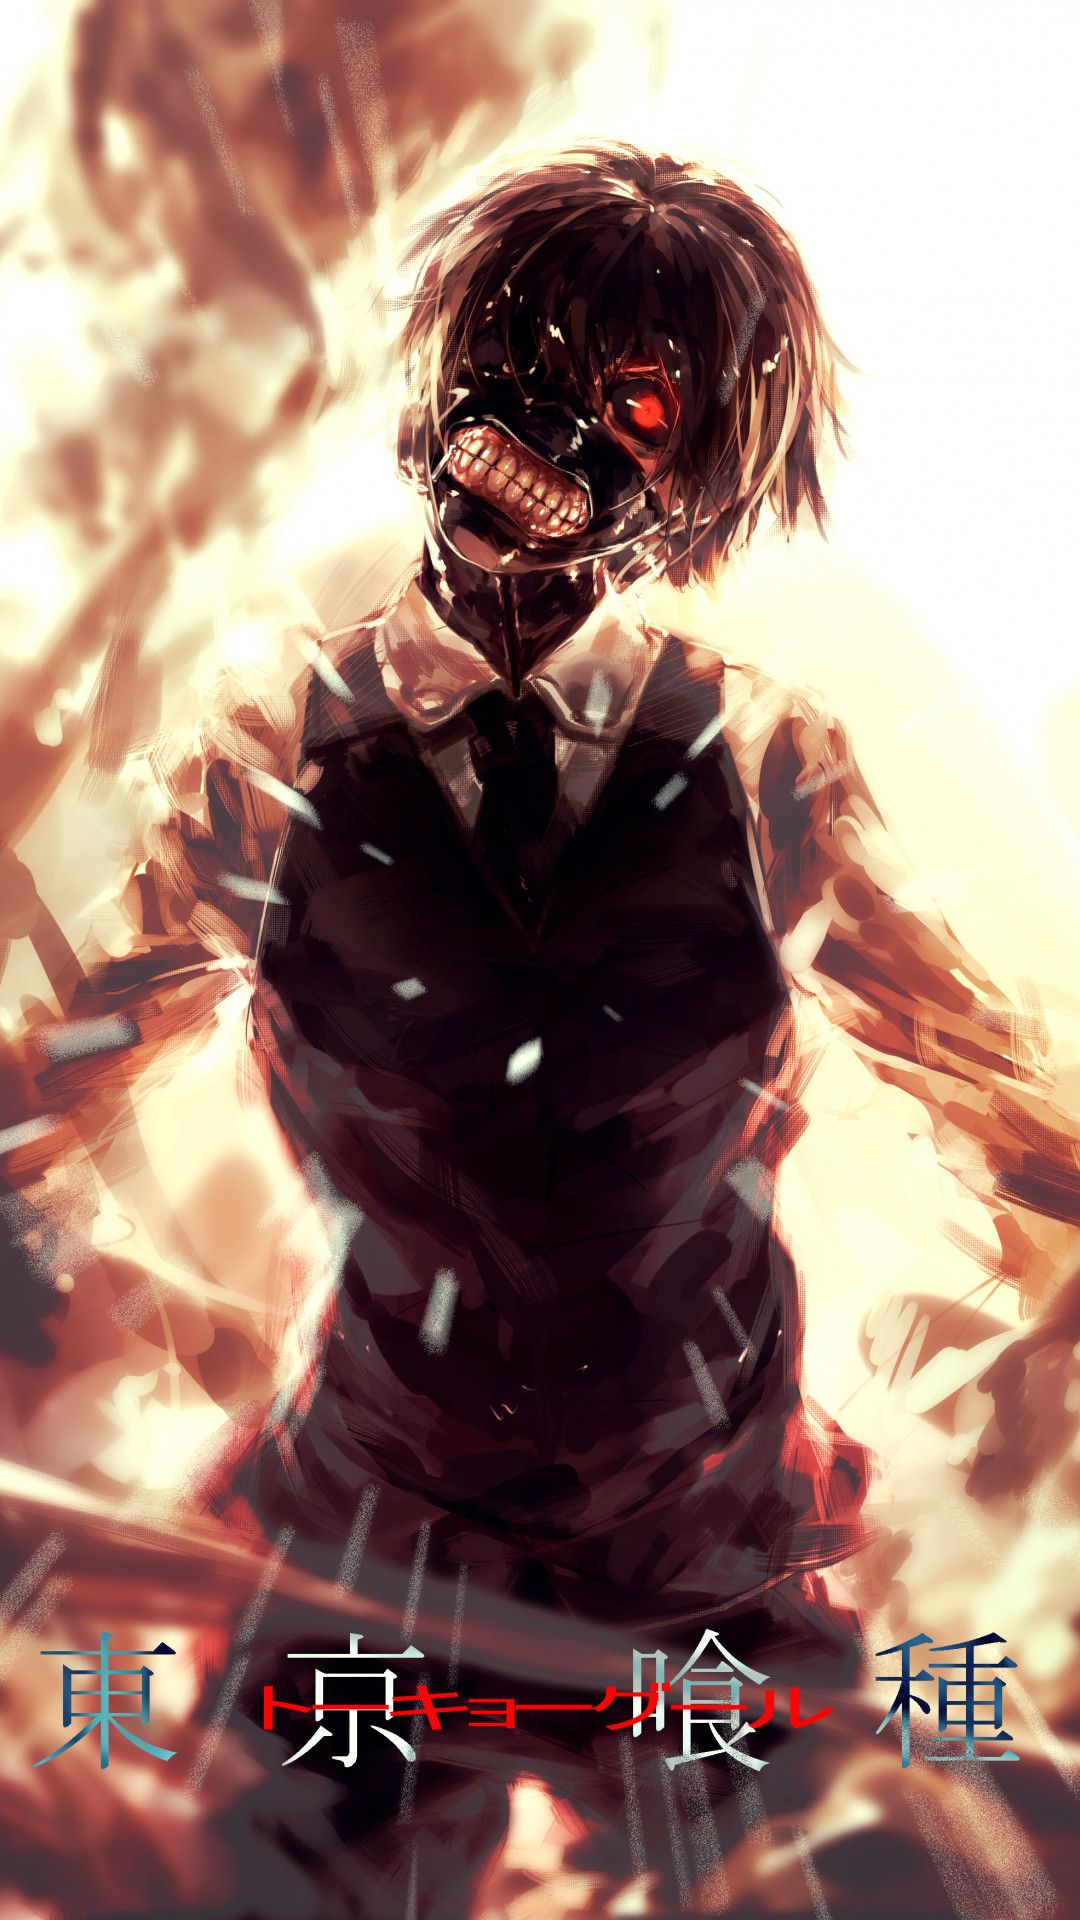 Tokyo Ghoul iPhone Wallpaper (76+ images) Аниме арт